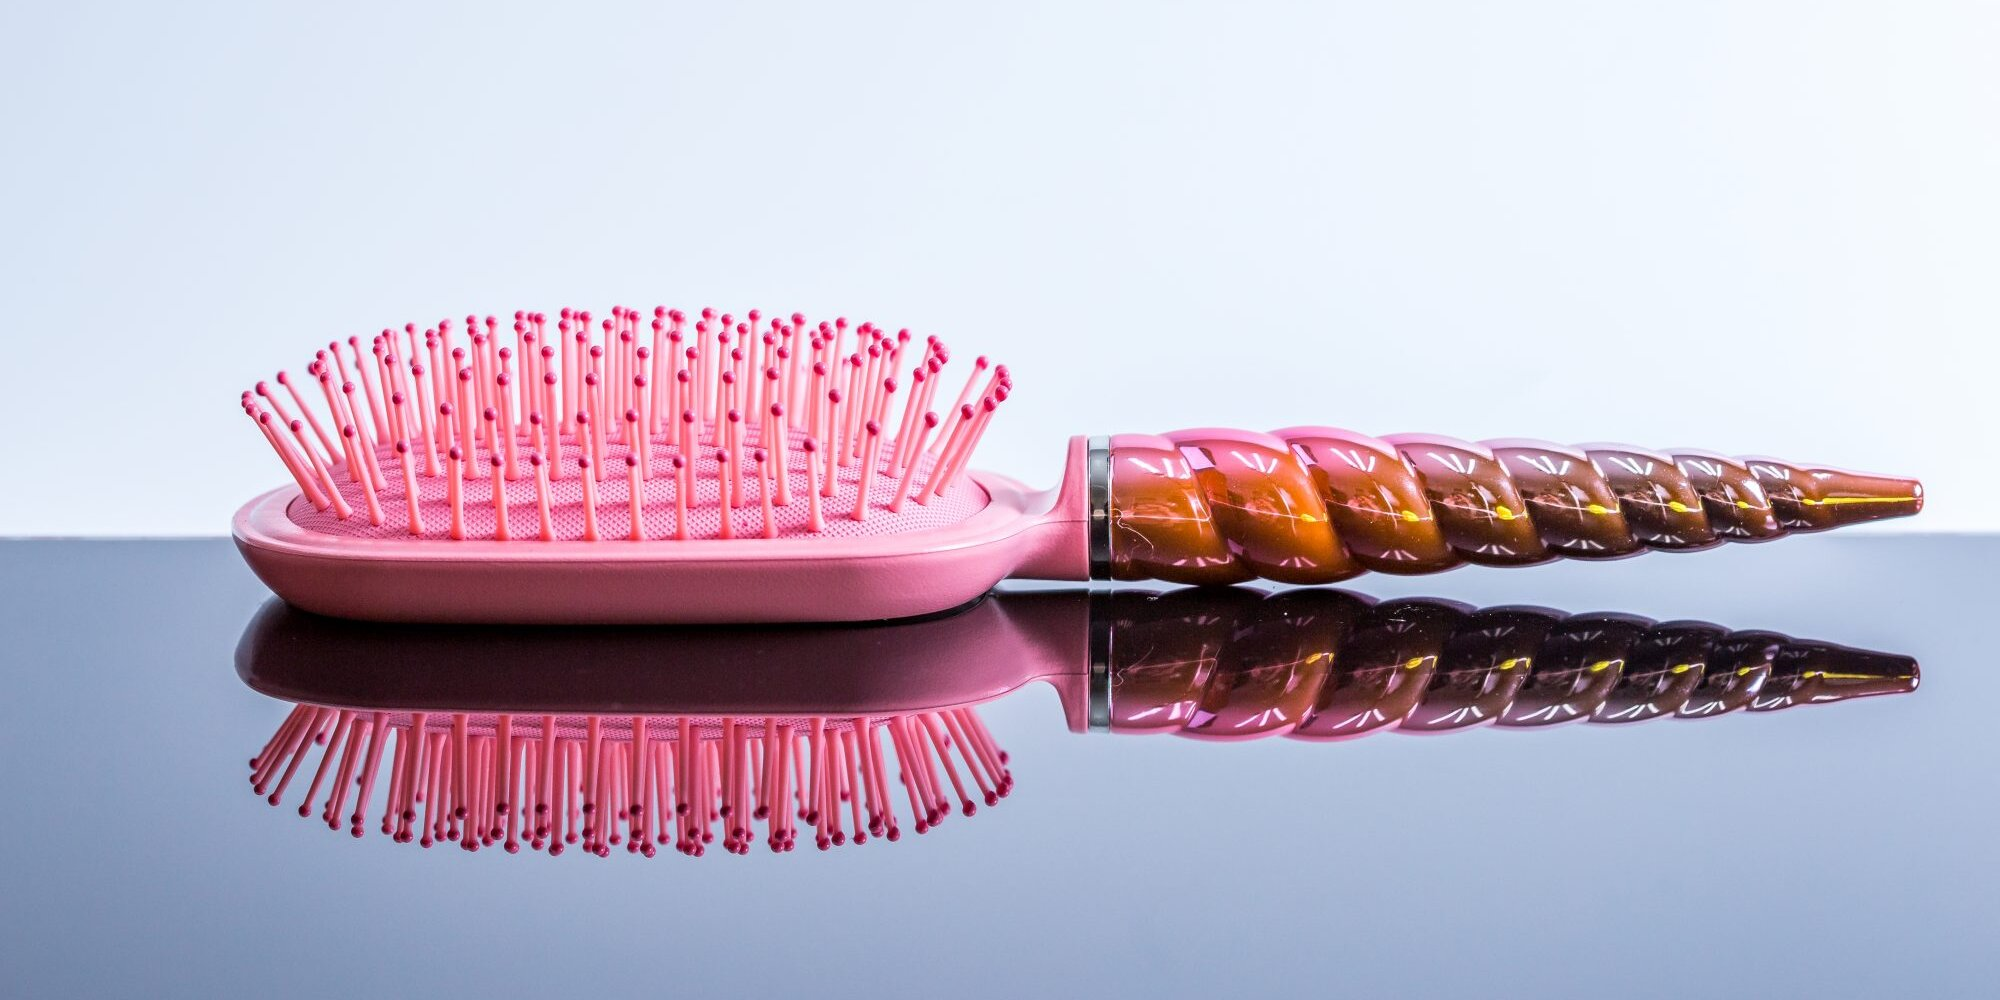 How to Choose the Right Hairbrush for Your Hair Type